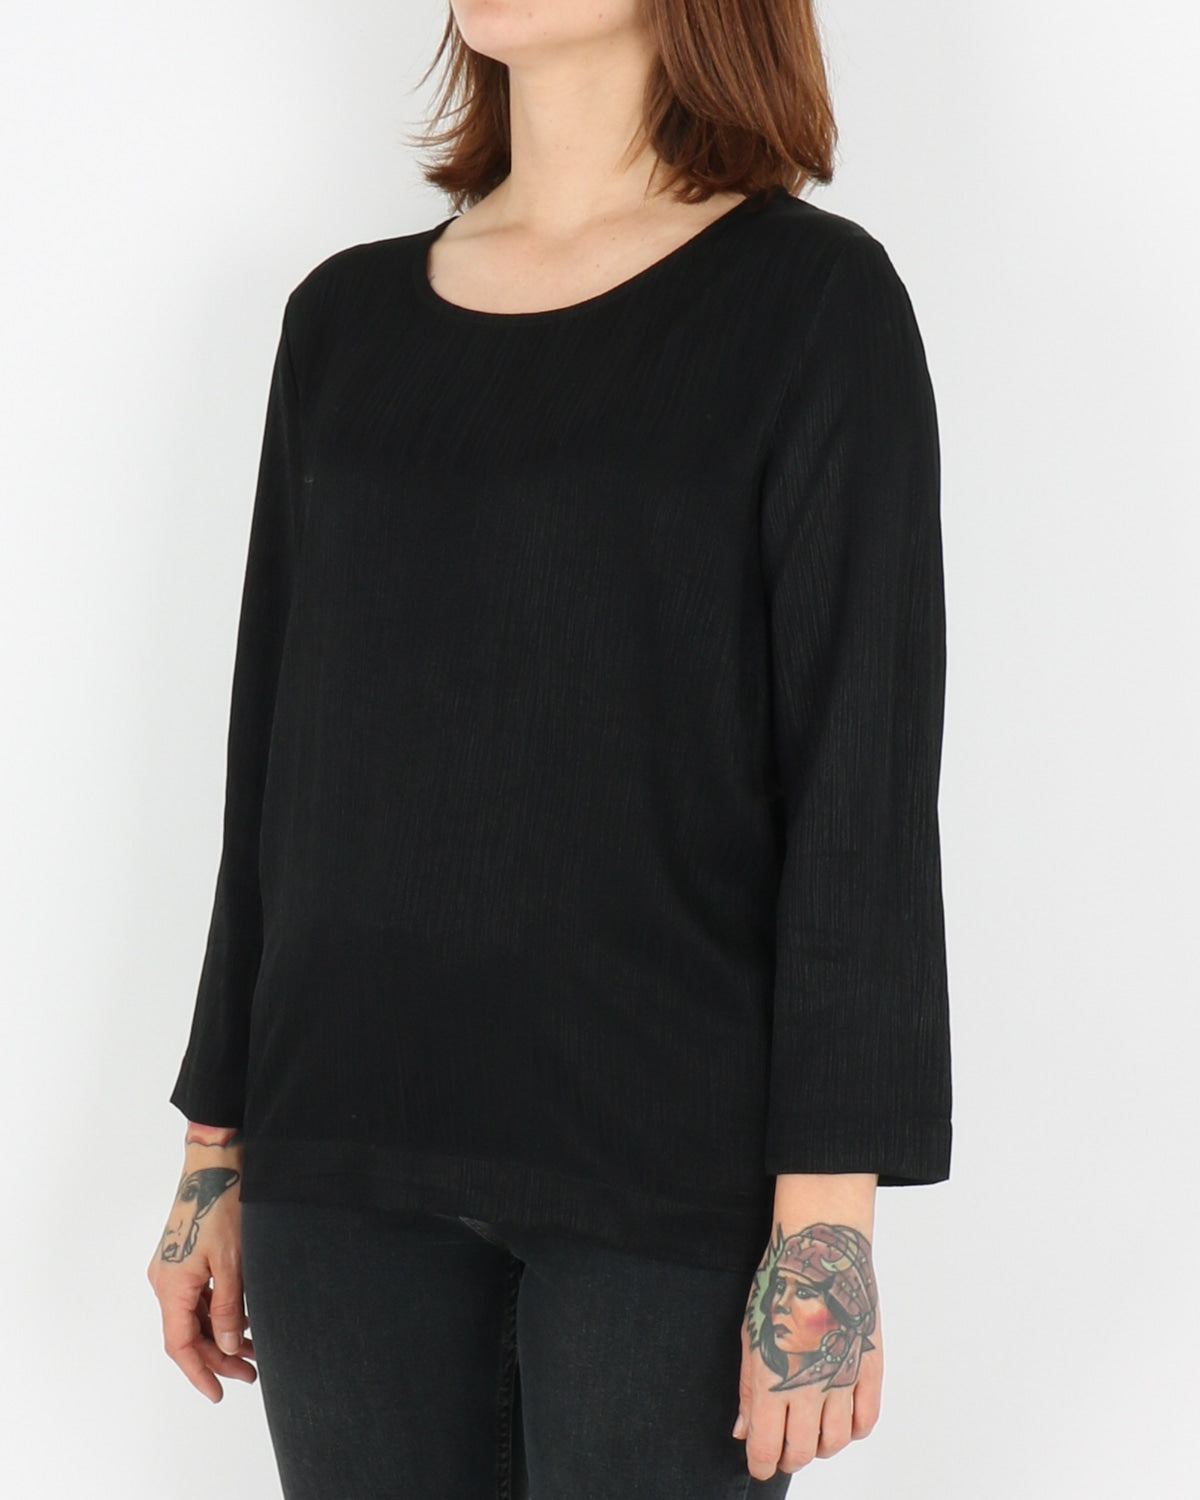 basic apparel_keira top_black_2_3